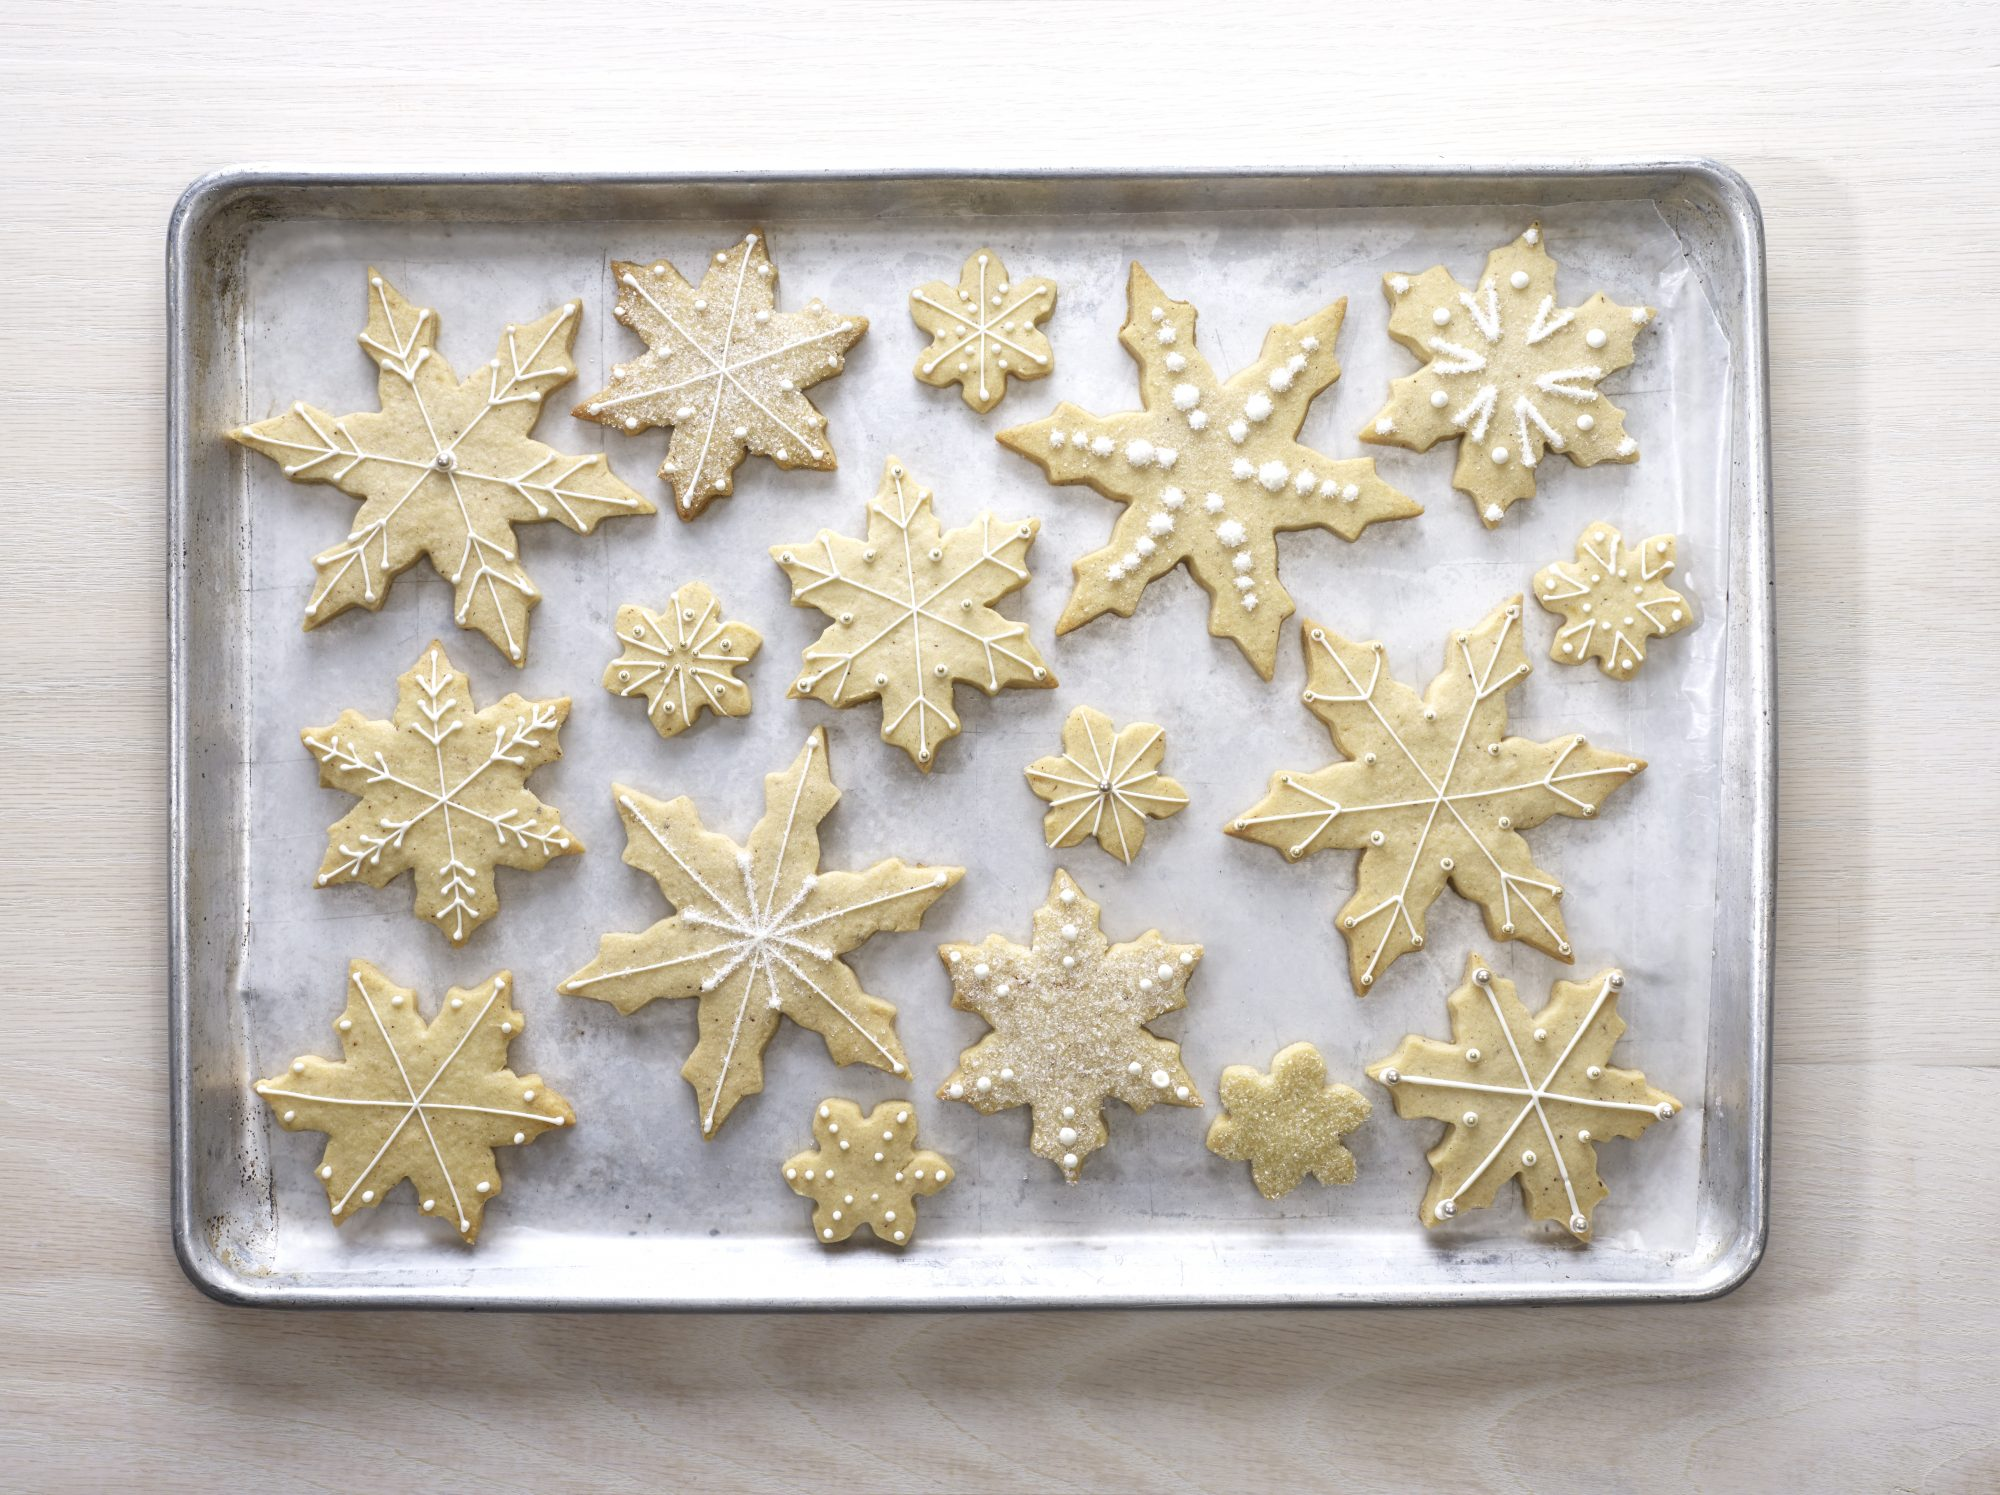 How To Make Snowflake Cookies